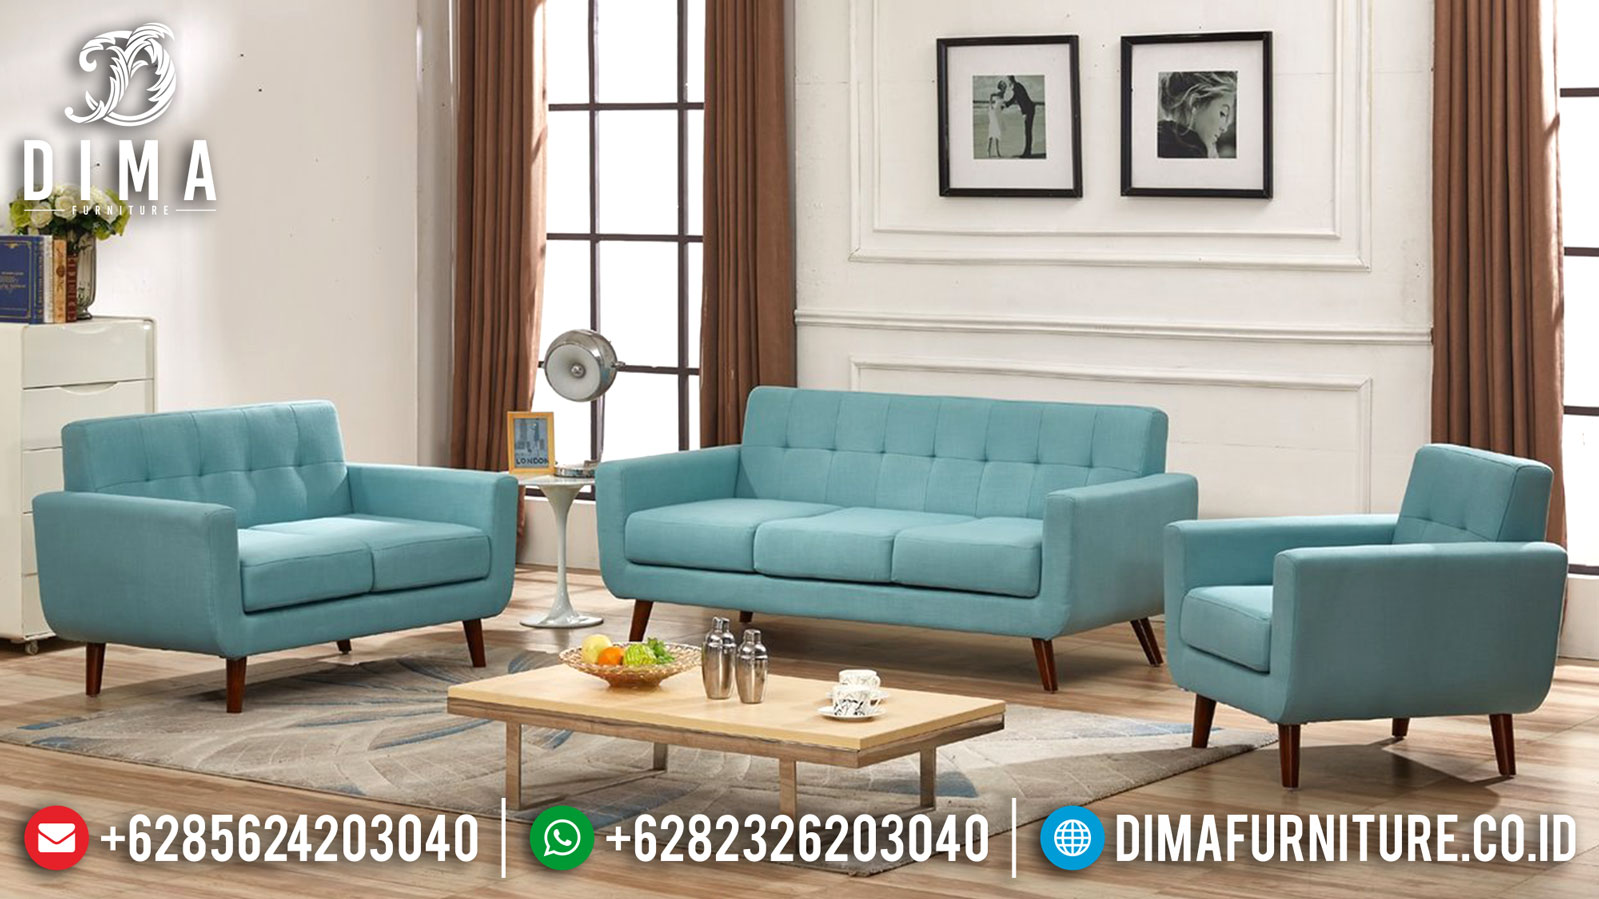 Model Sofa Tamu Minimalis Jepara Blue Sea Fabric New Luxury Design TTJ-1226